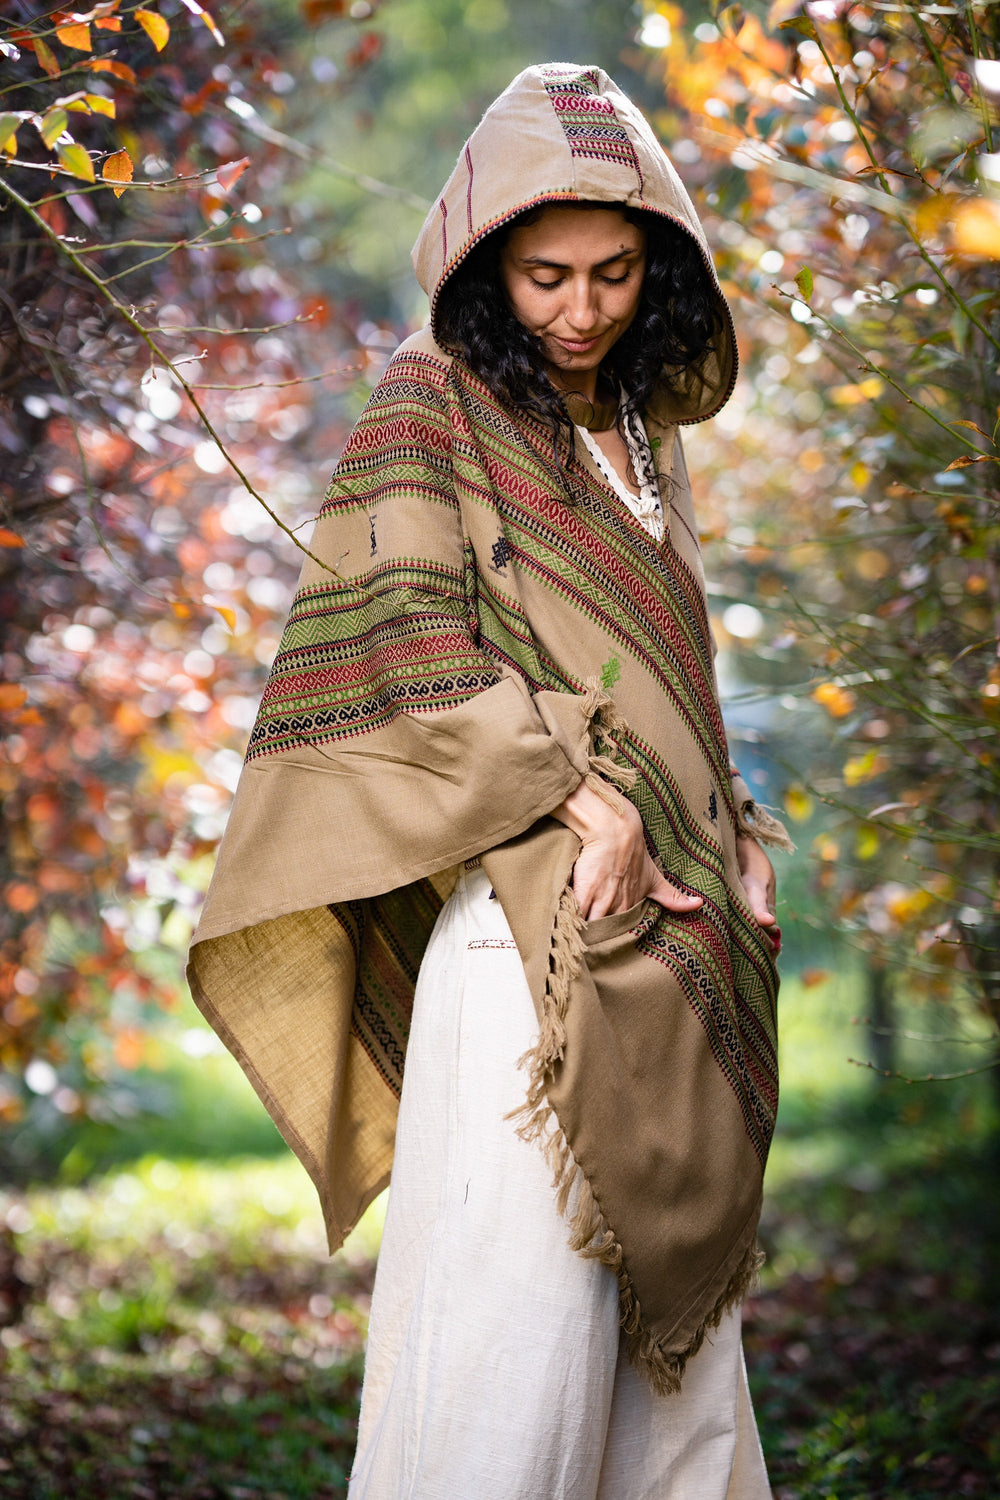 Womens Hooded Poncho Desert Sand Brown Cashmere Wool with Hood Pockets Earthy Tribal Pattern Festival Gypsy AJJAYA Mexican Primitive Nomadic